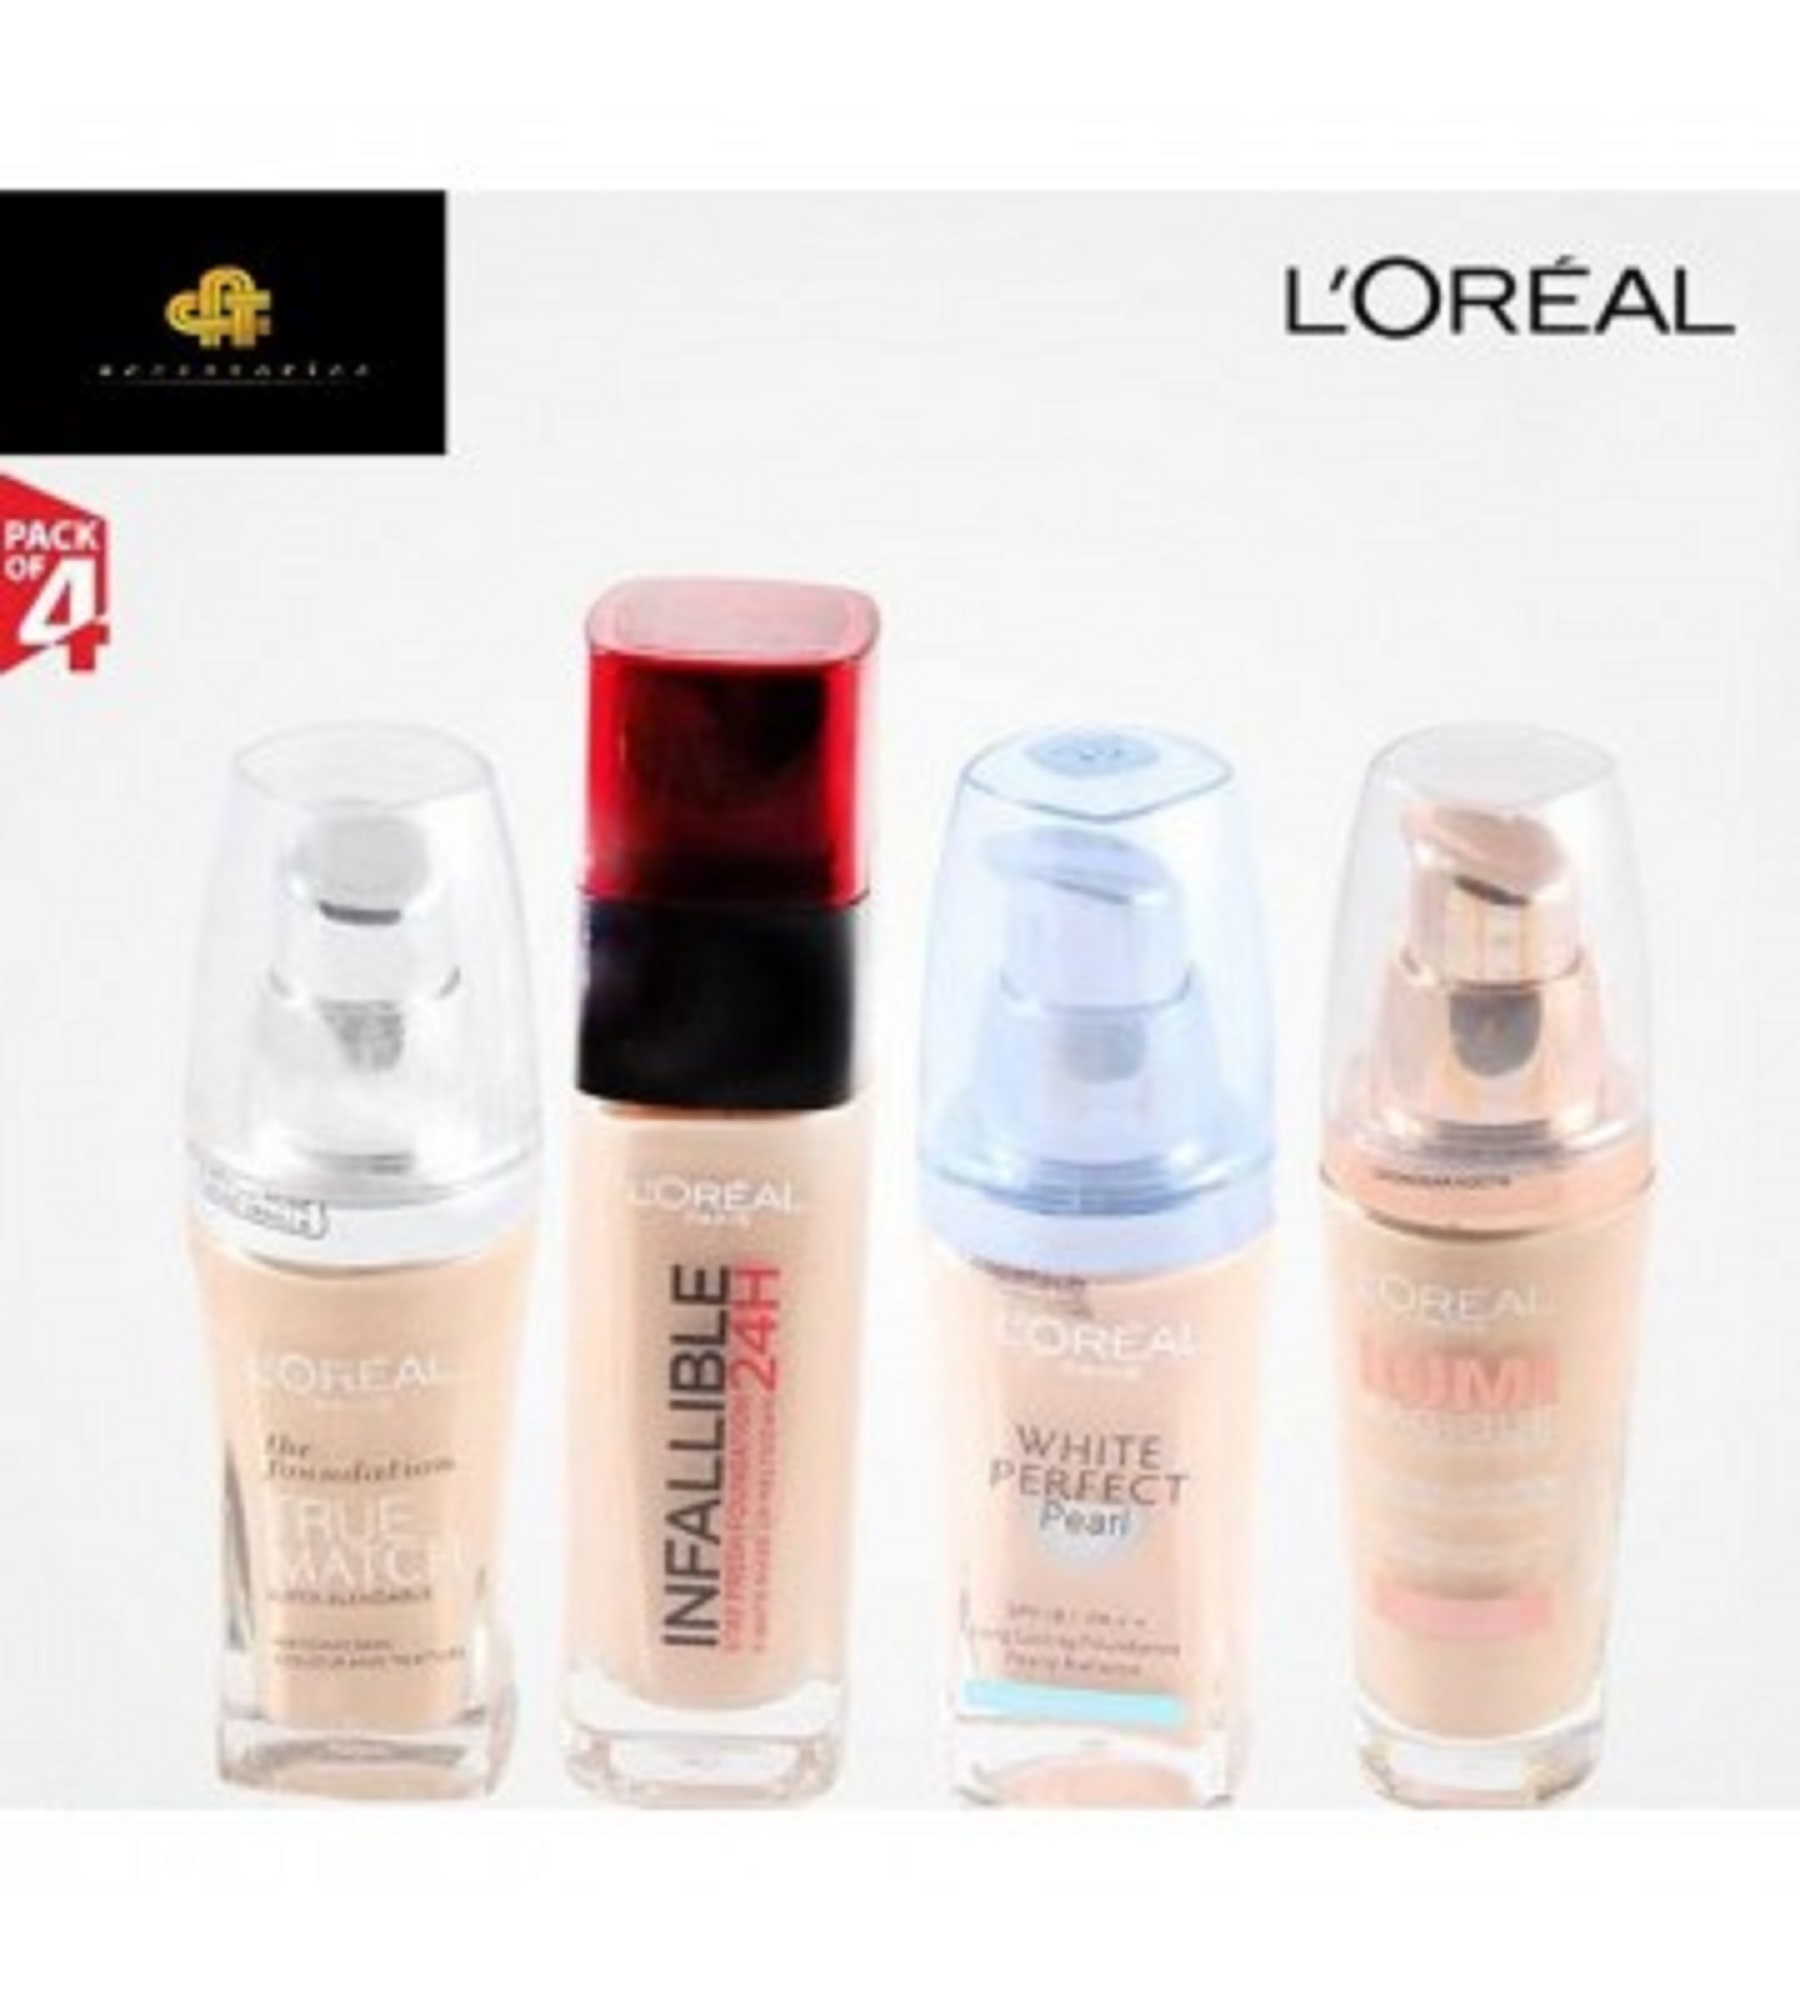 LOREAL Pack of 4 Makeup Products